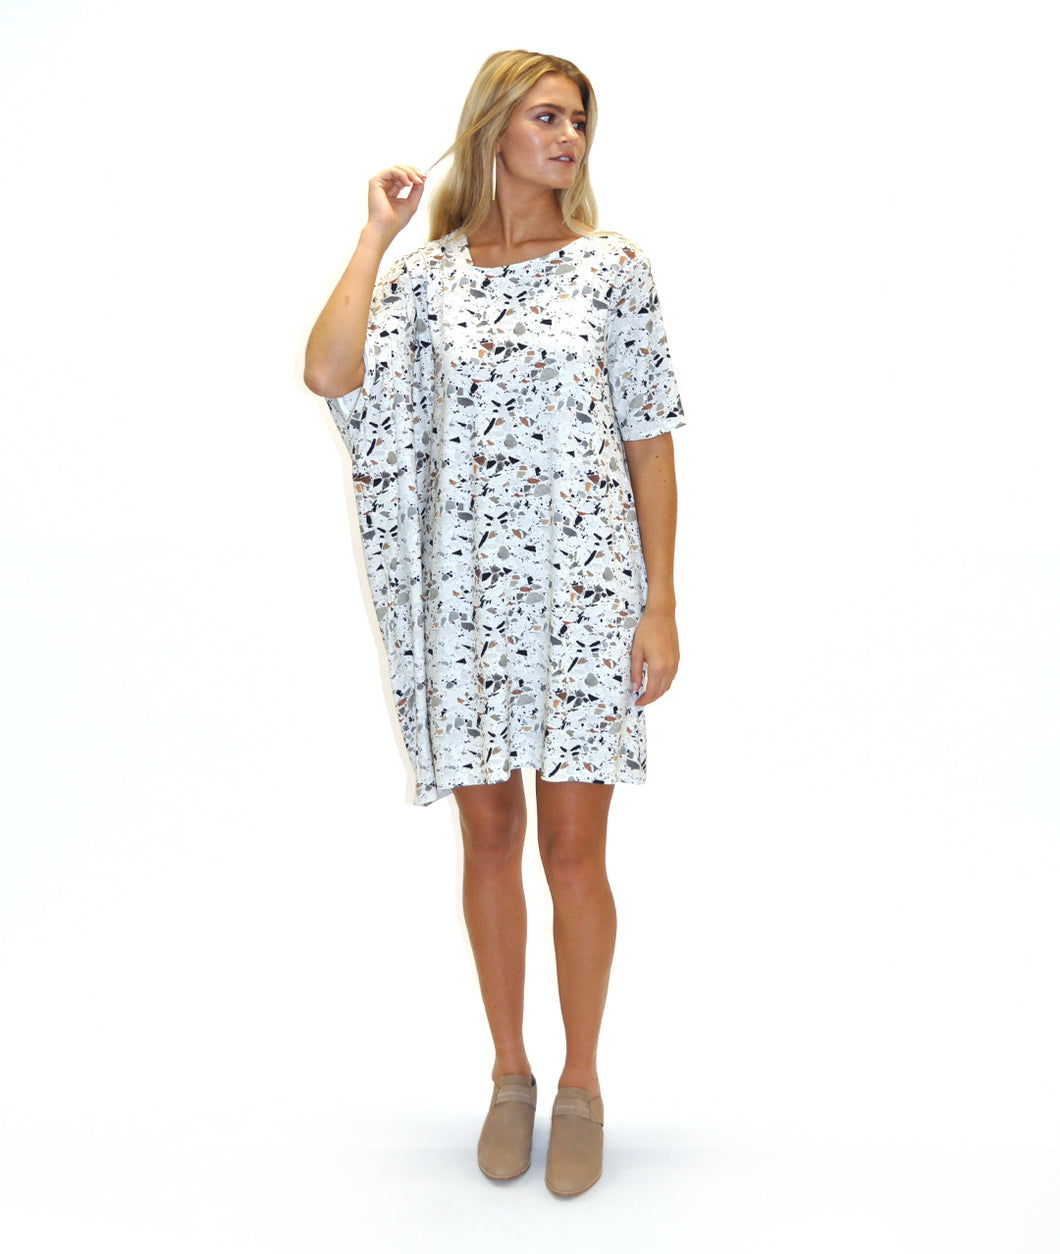 model in a terrazzo print asymmetrical tunic in front of a white background